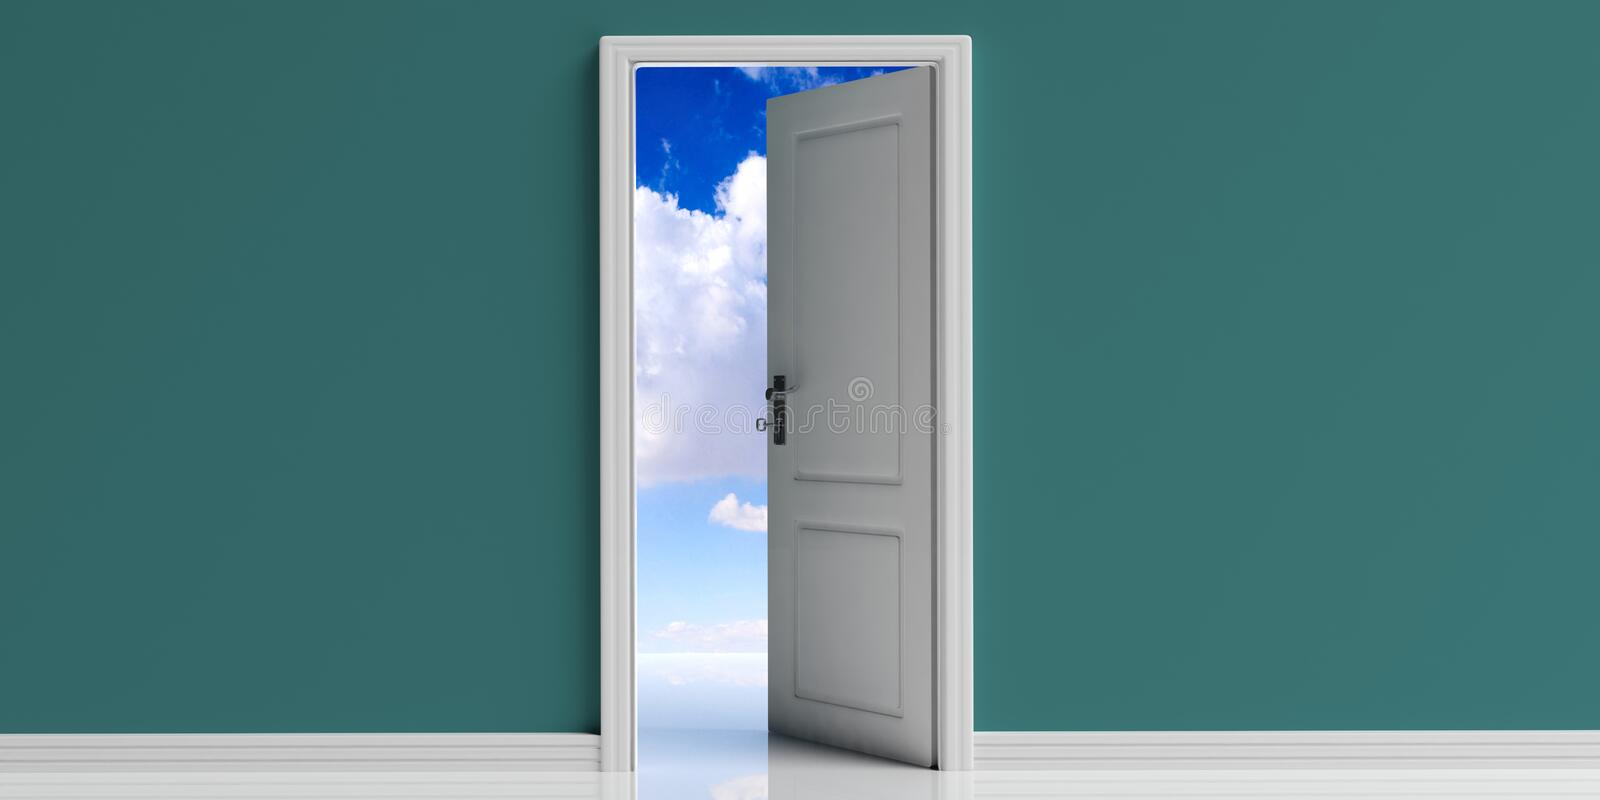 Open door on green wall background, blue sky with clouds view out of the door opening. 3d illustration stock illustration